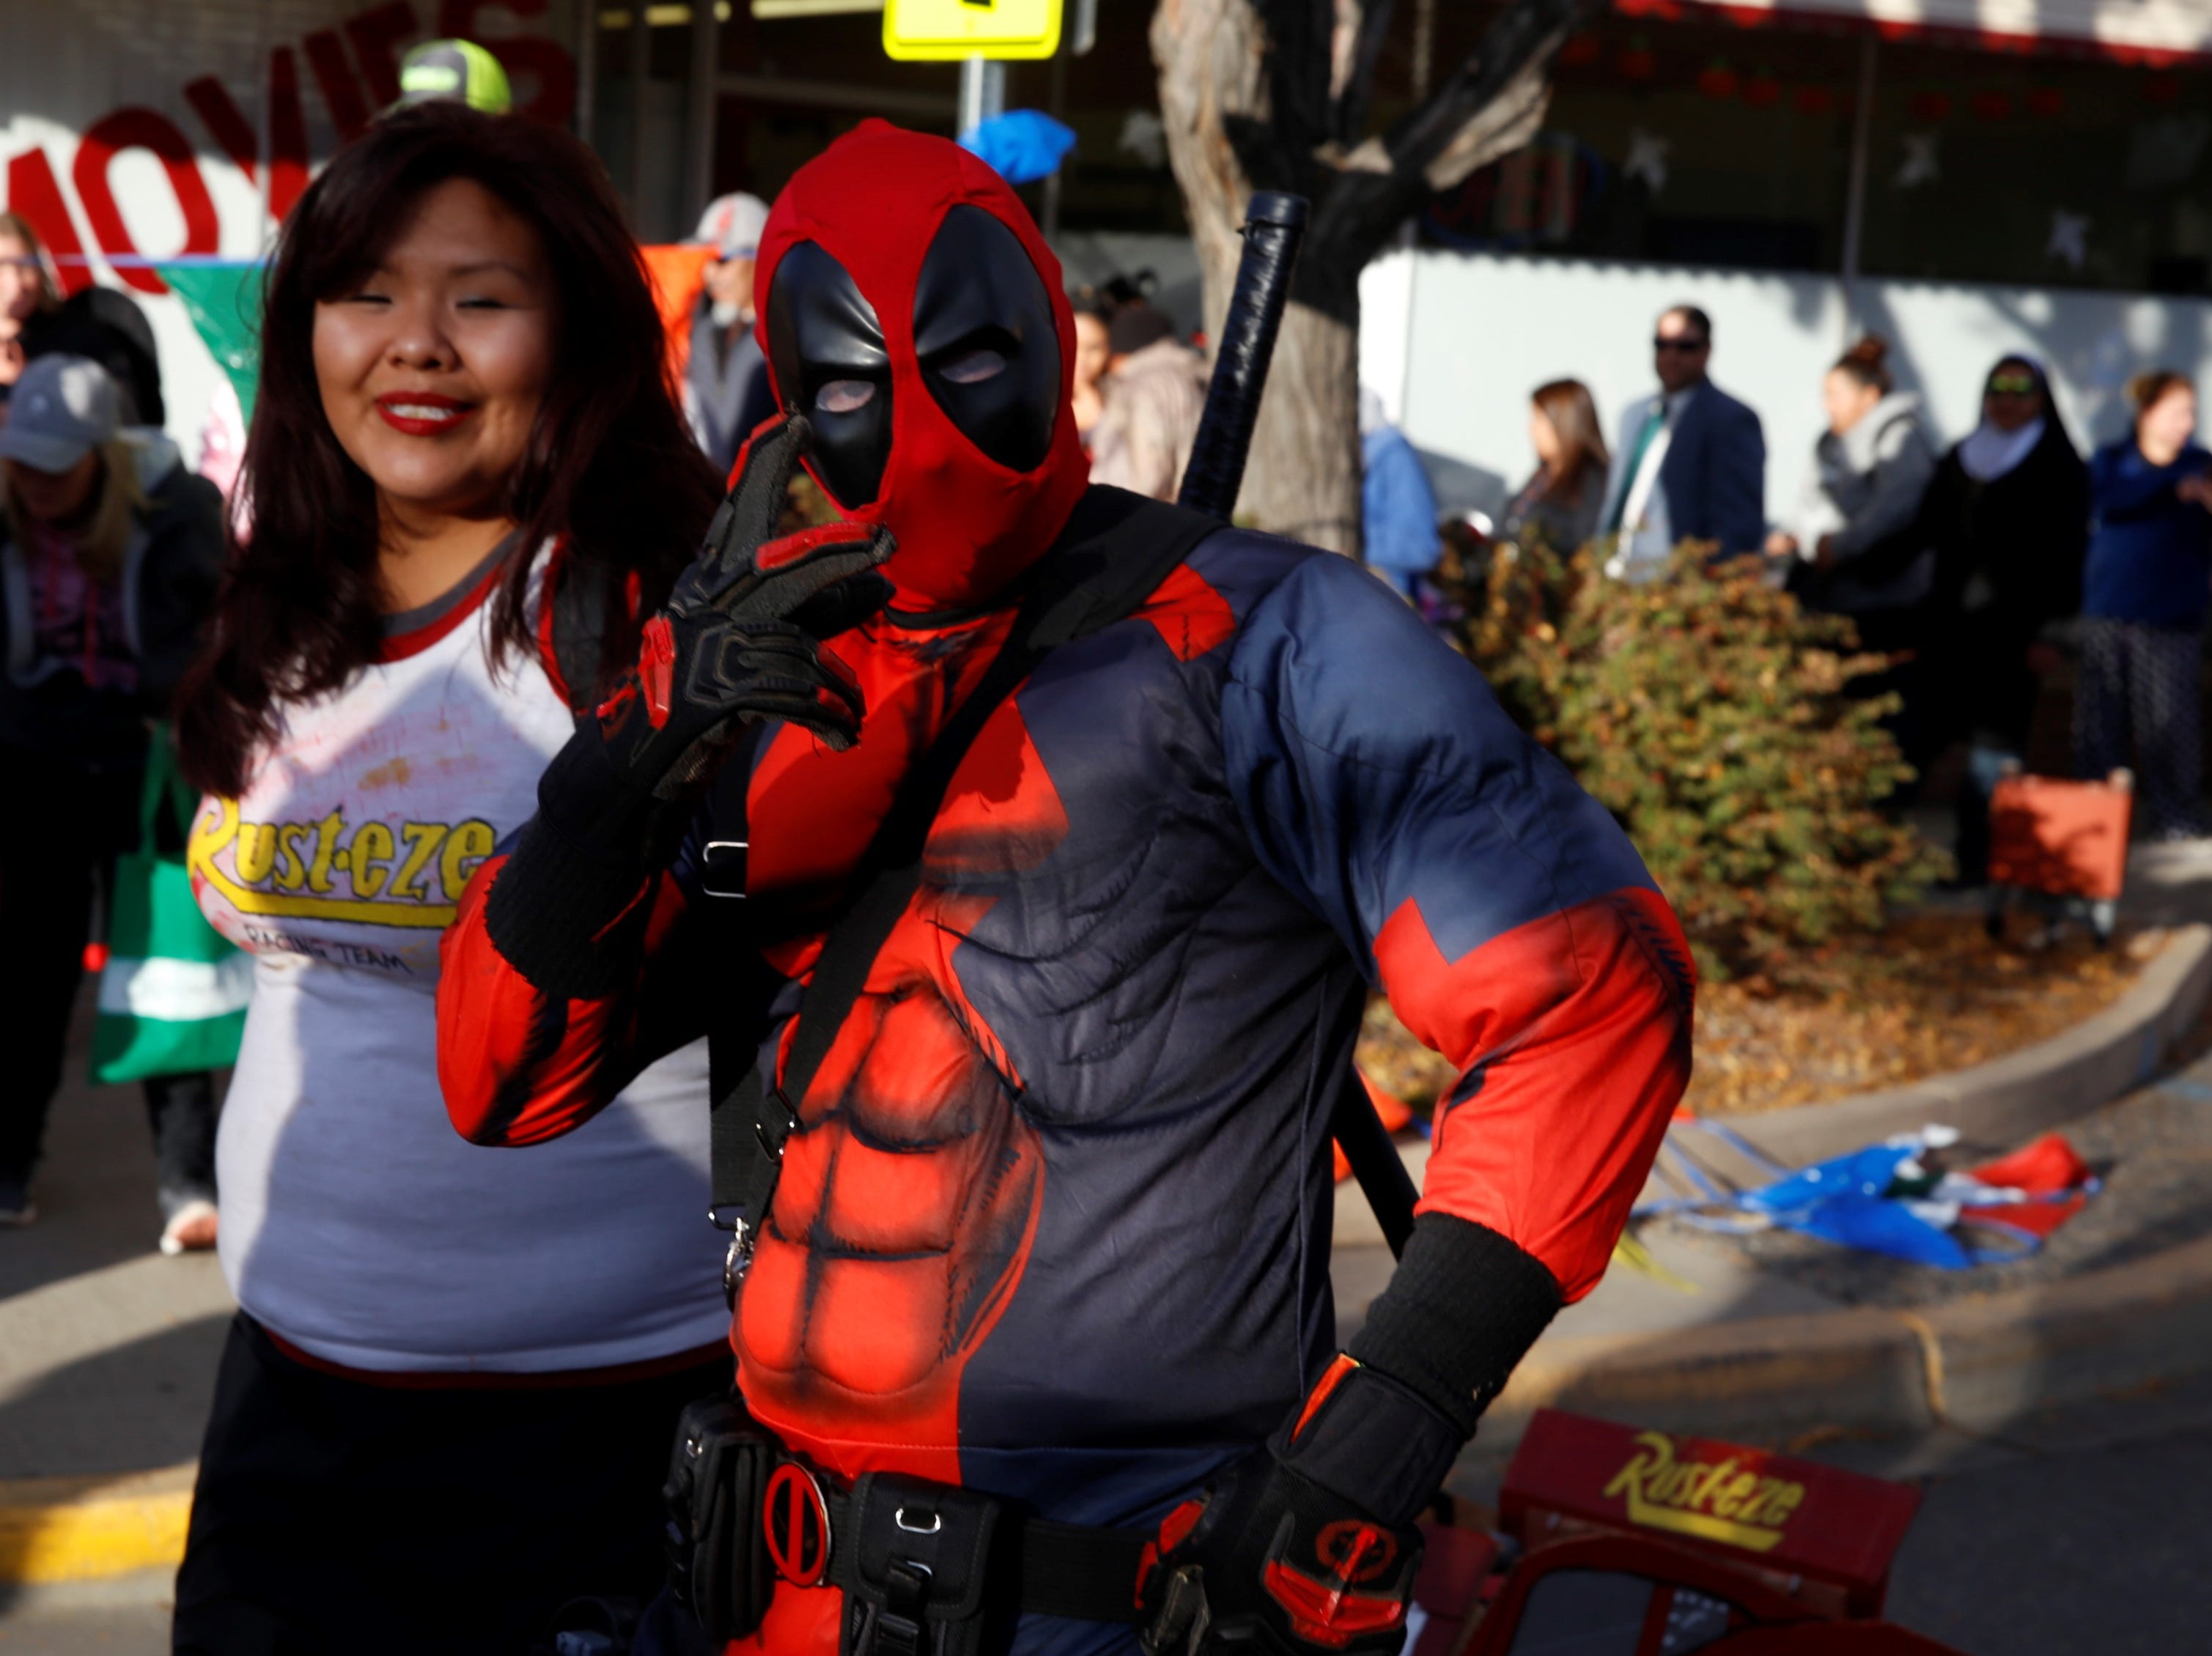 Dusty John, dressed as Deadpool, poses while walking down Main Street during BooPalooza Wednesday in Farmington.